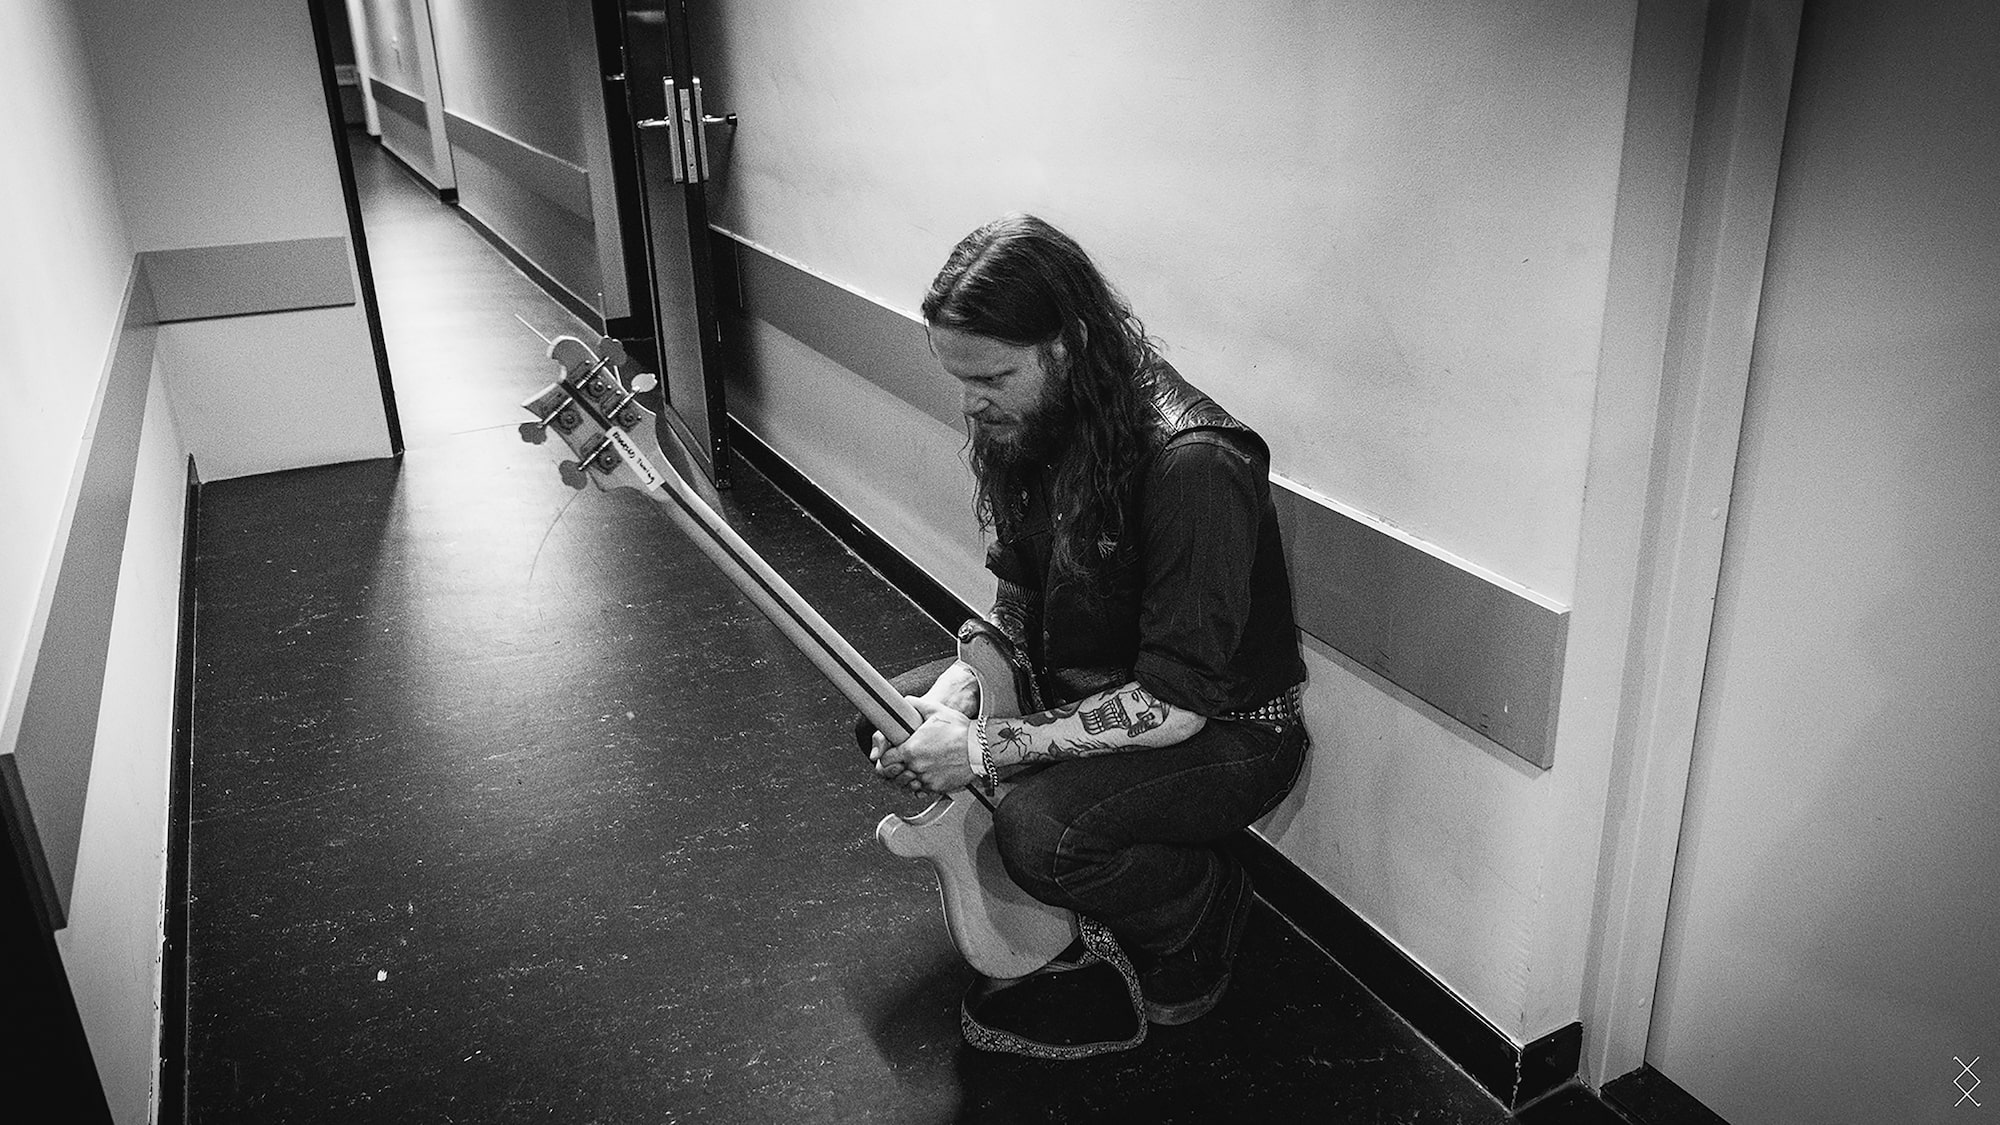 maaike ronhaar sony alpha 7RIII bass guitarist sits on his haunches waiting to go on stage